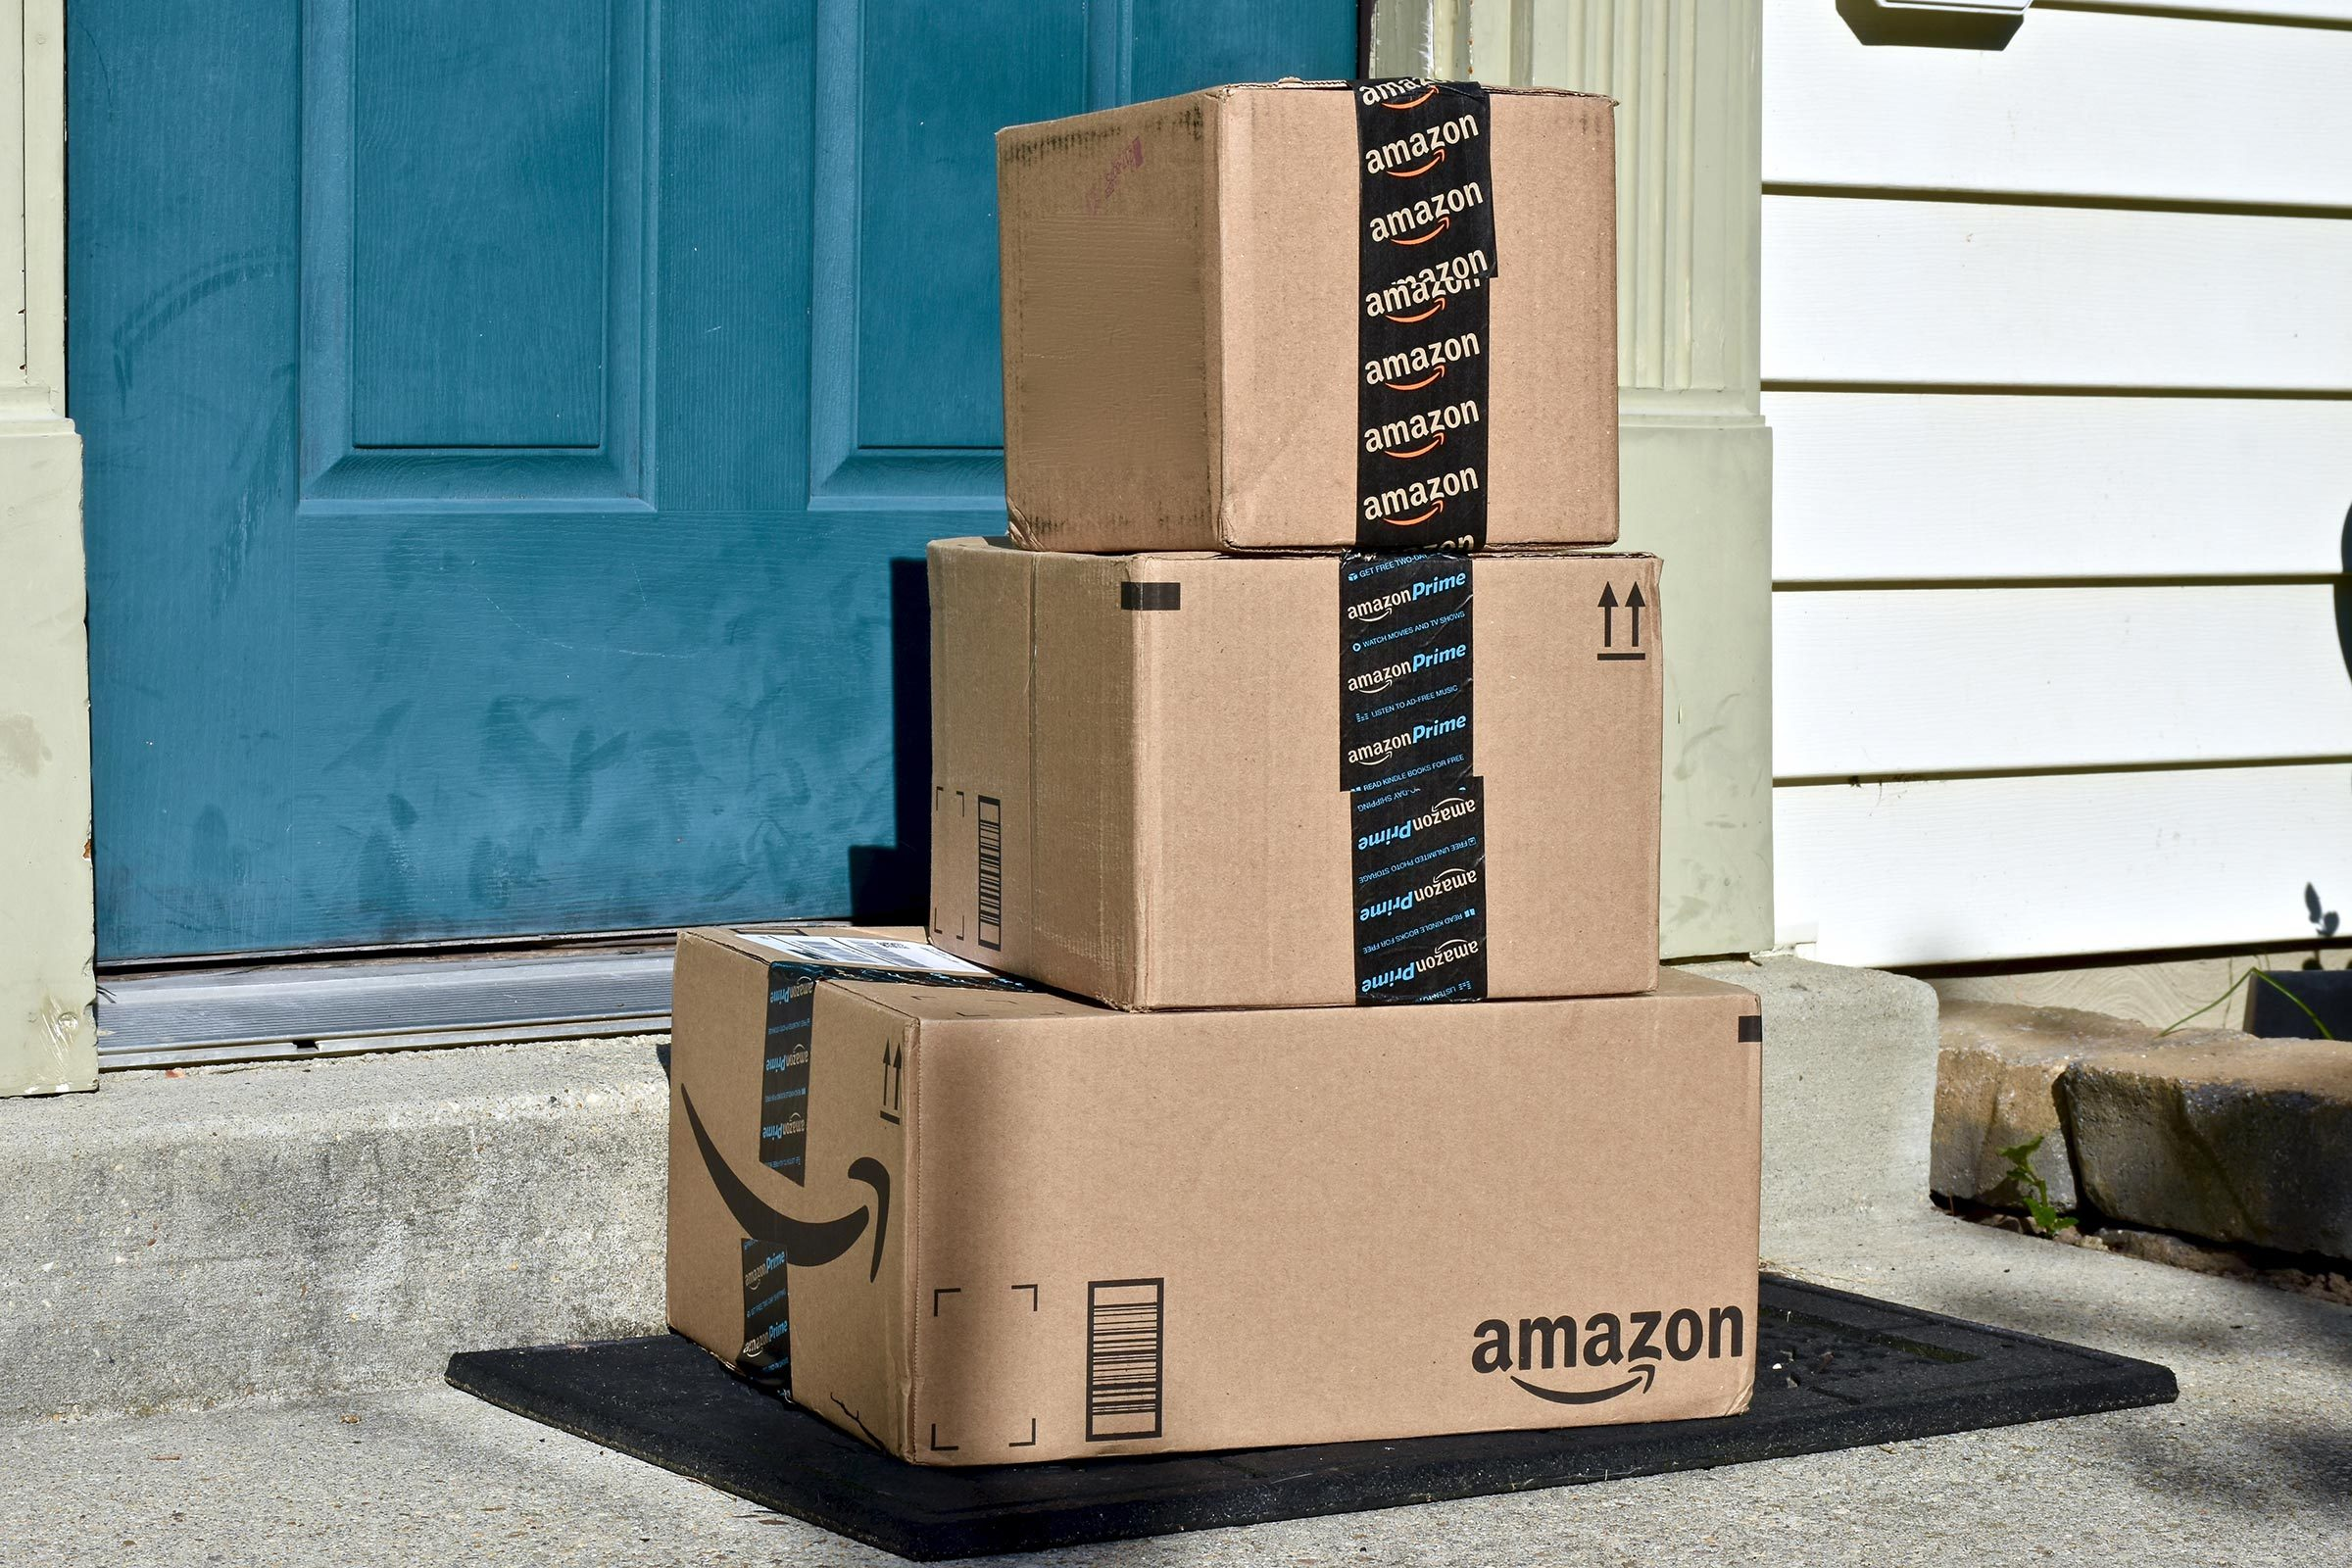 Amazon Prime Benefits You Might Not Know About | Reader's Digest